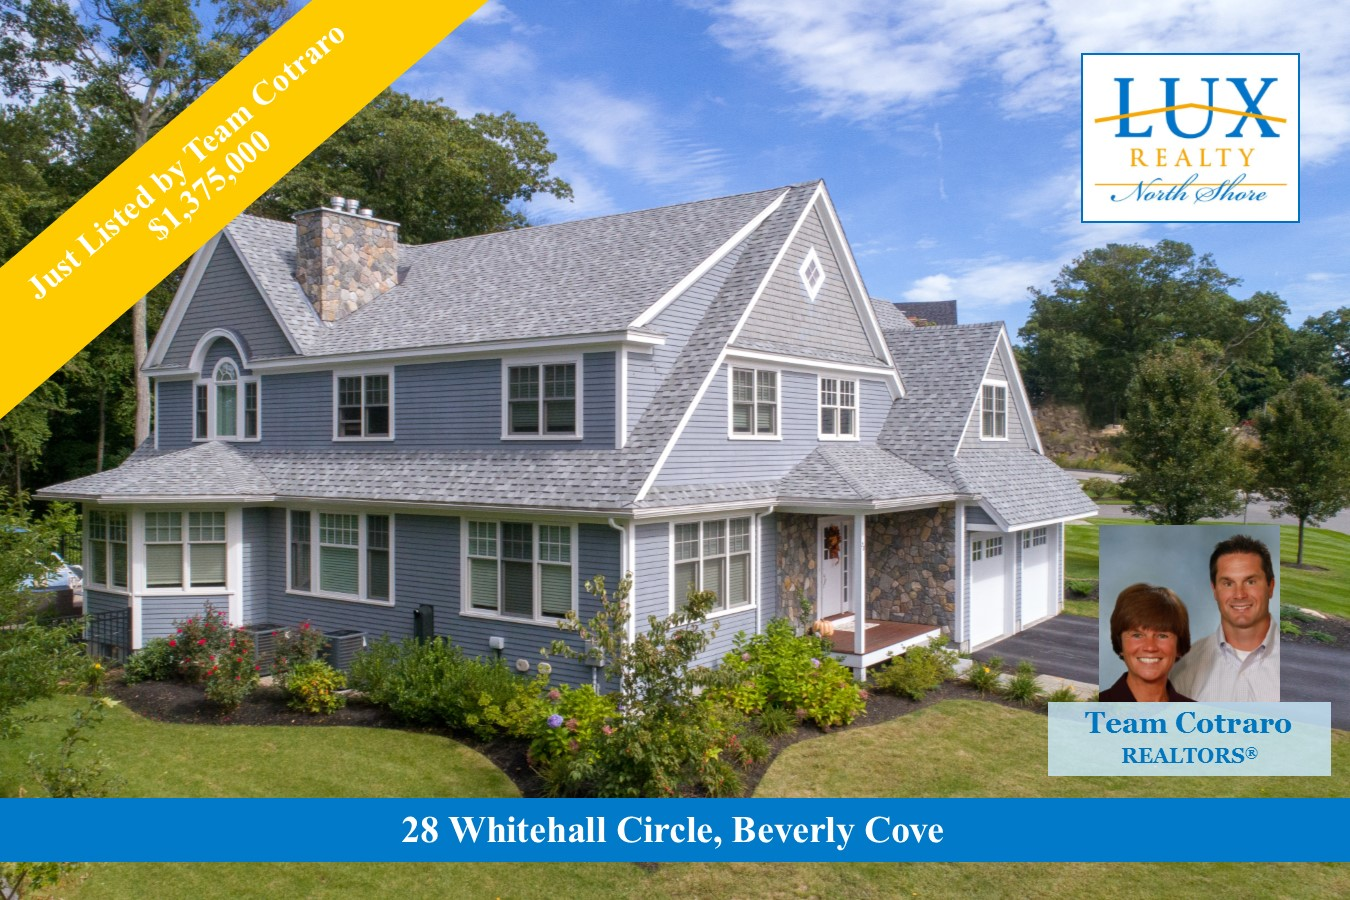 Luxury Homes for Sale in Beverly Massachusetts